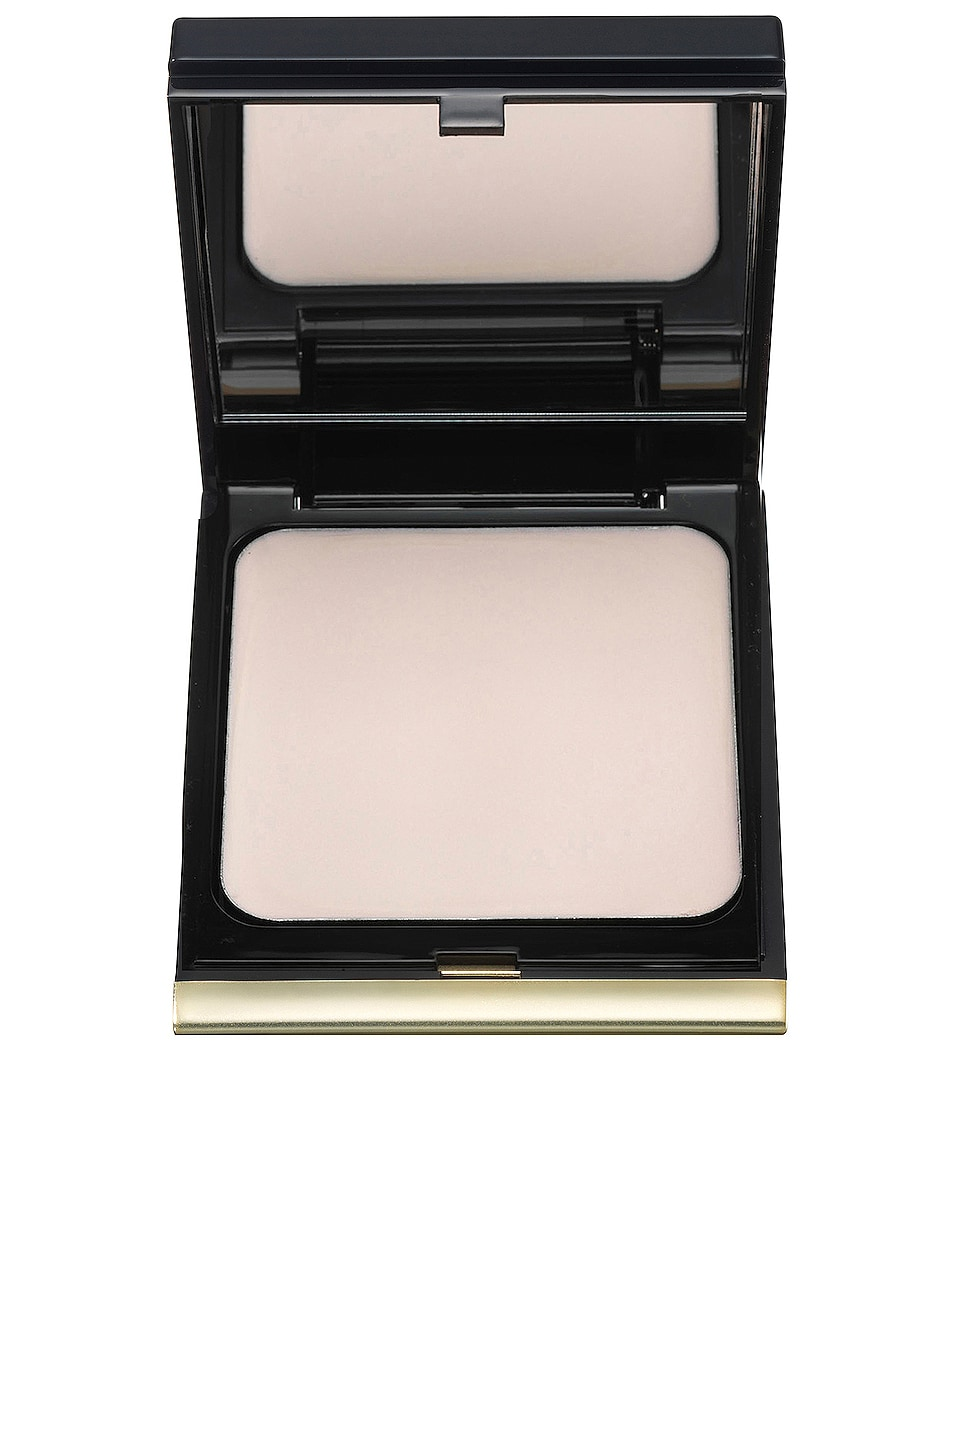 Kevyn Aucoin The Guardian Angel Cream Highlighter in Halo